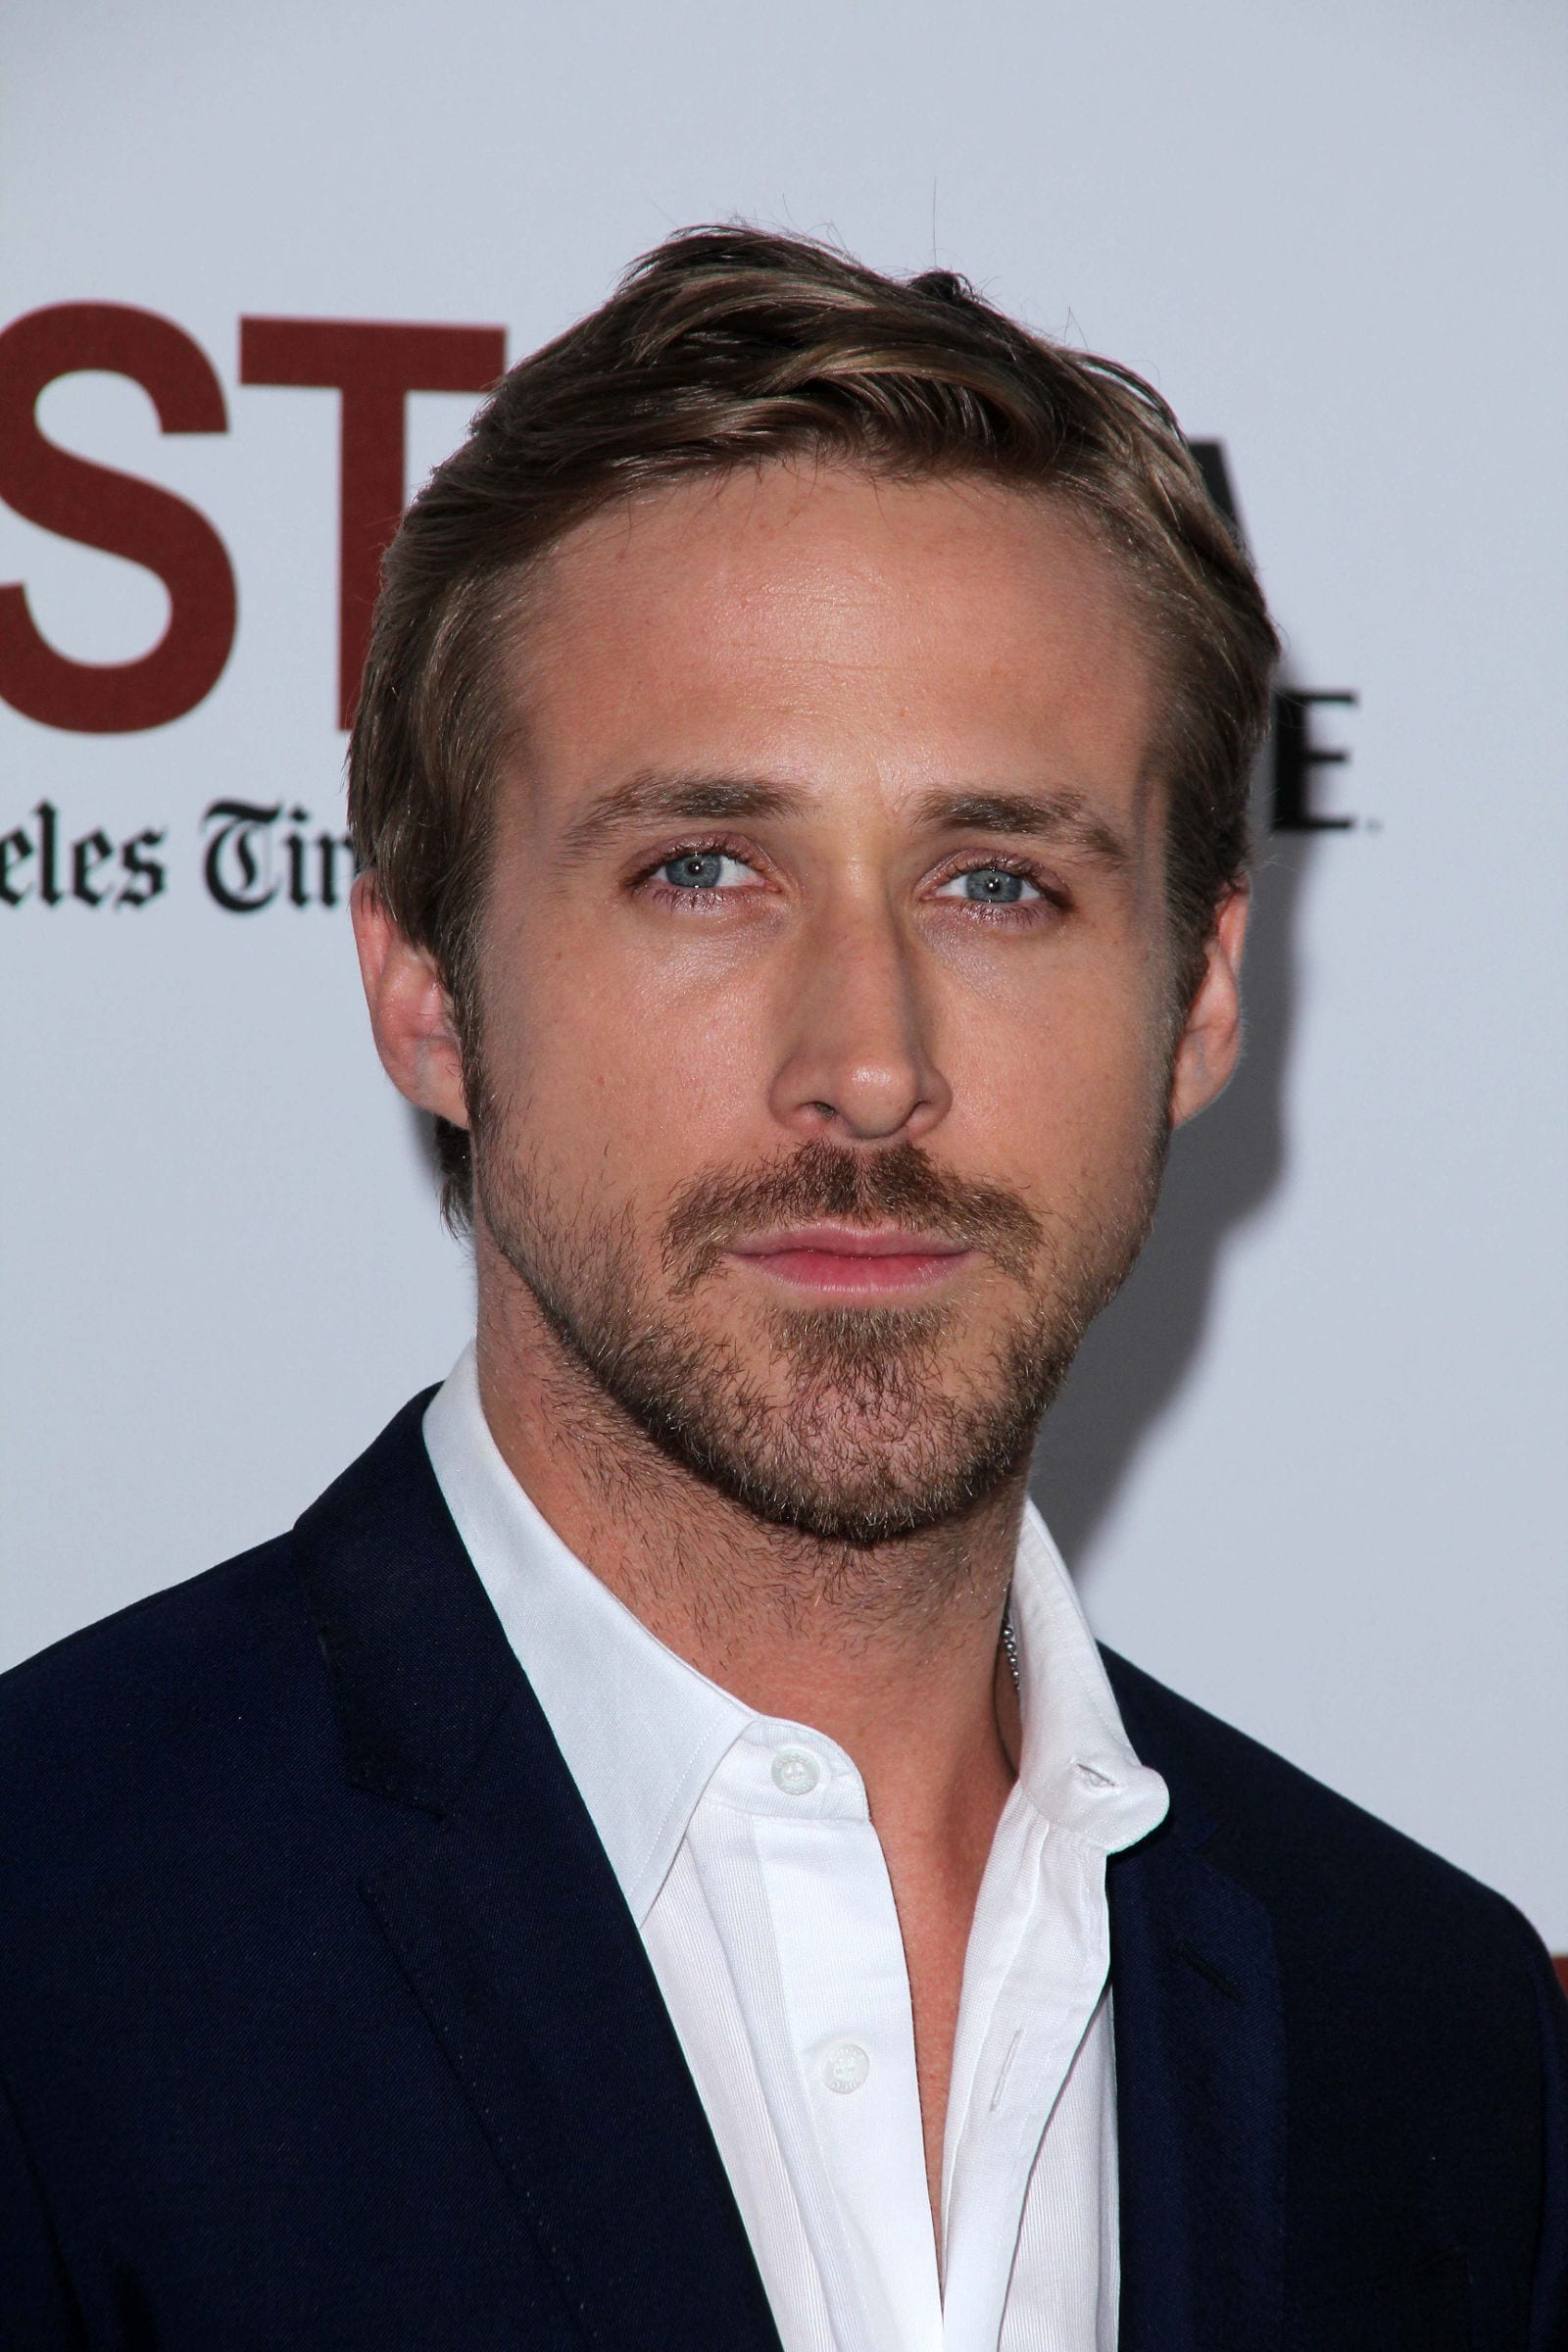 Ryan Gosling Messy Side Swept June 2011